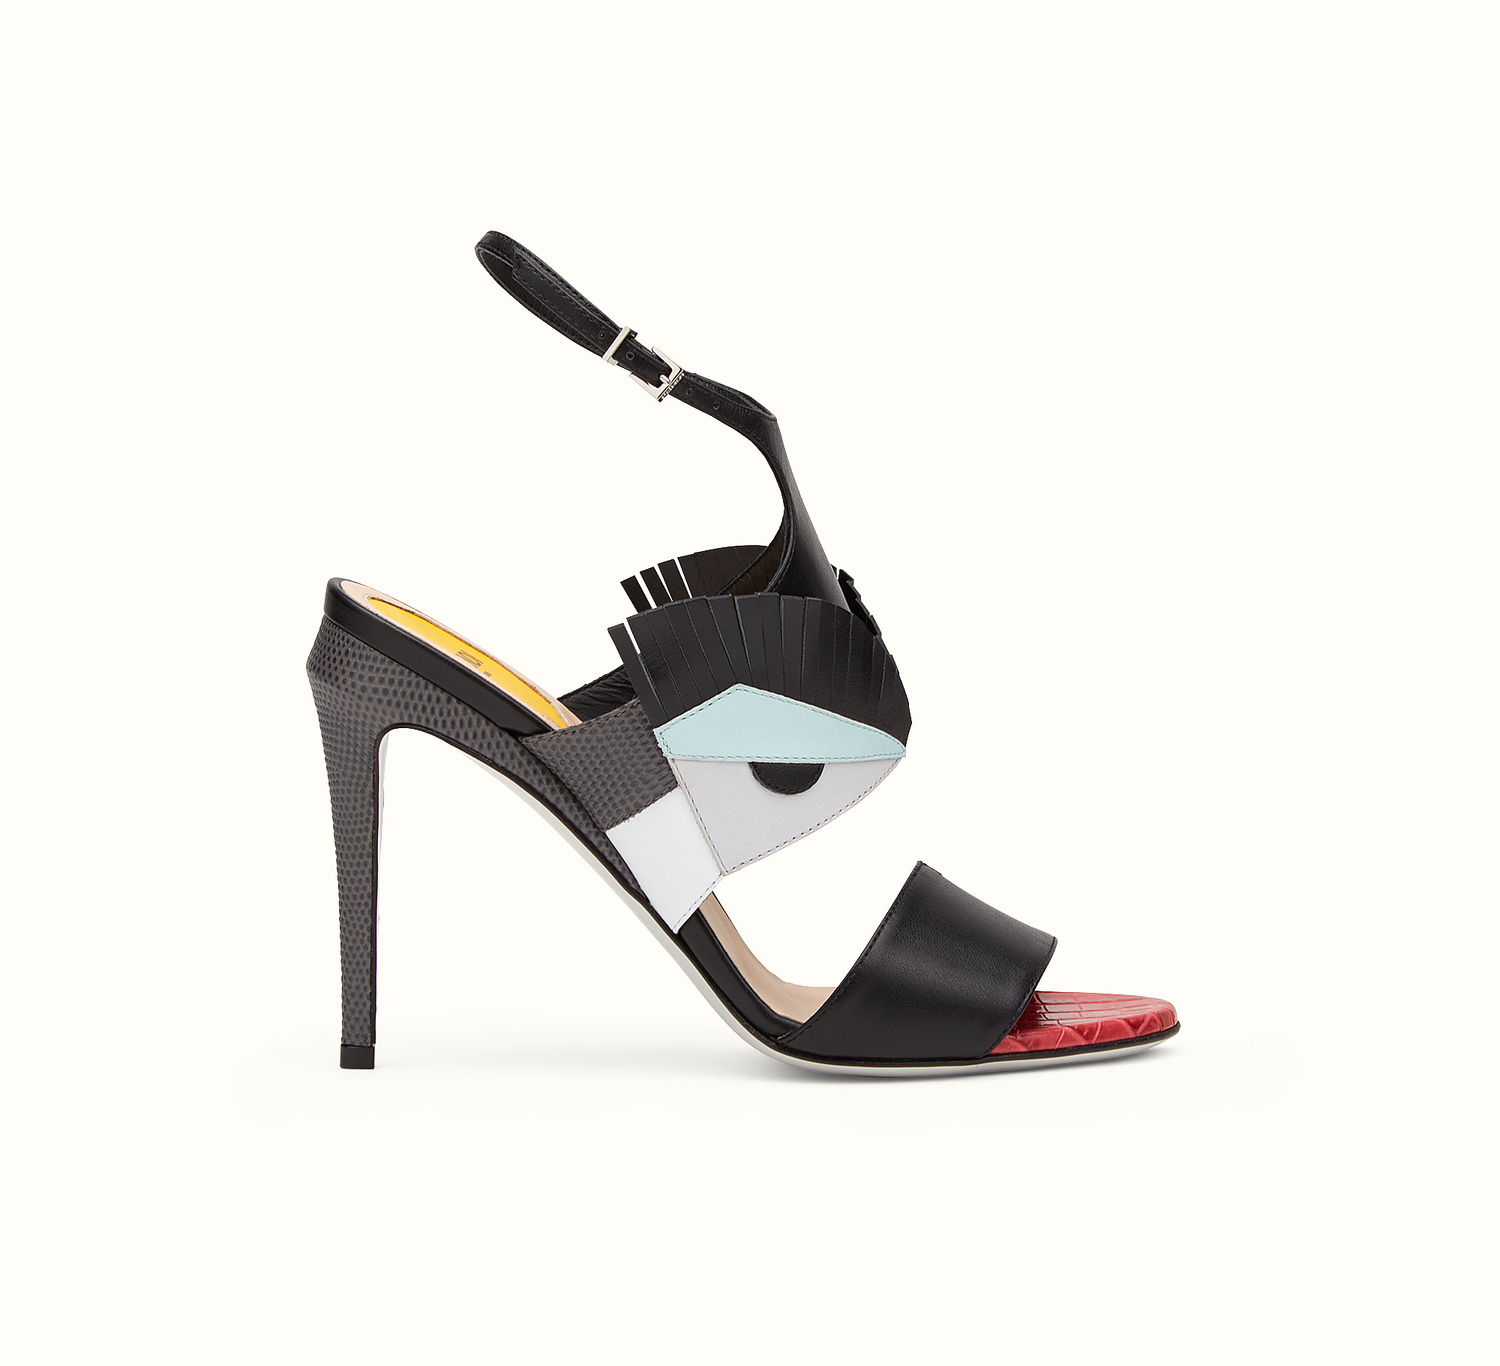 13 Fendi fall winter 2015 2016 wishlist wish list behindmyglasses.com giulia de martin